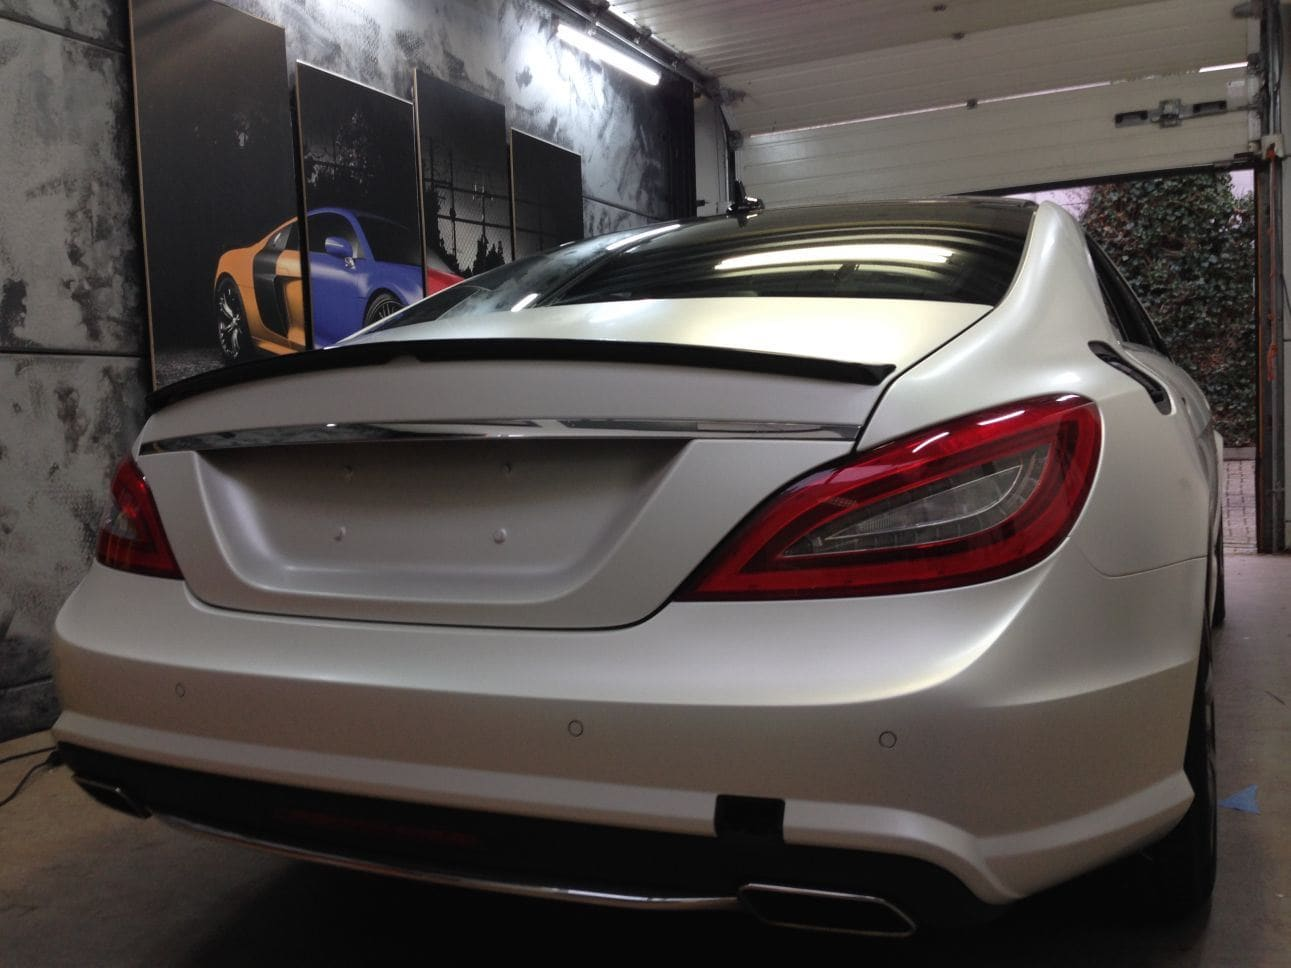 Mercedes CLS met White Satin Pearl Wrap, Carwrapping door Wrapmyride.nu Foto-nr:6185, ©2021